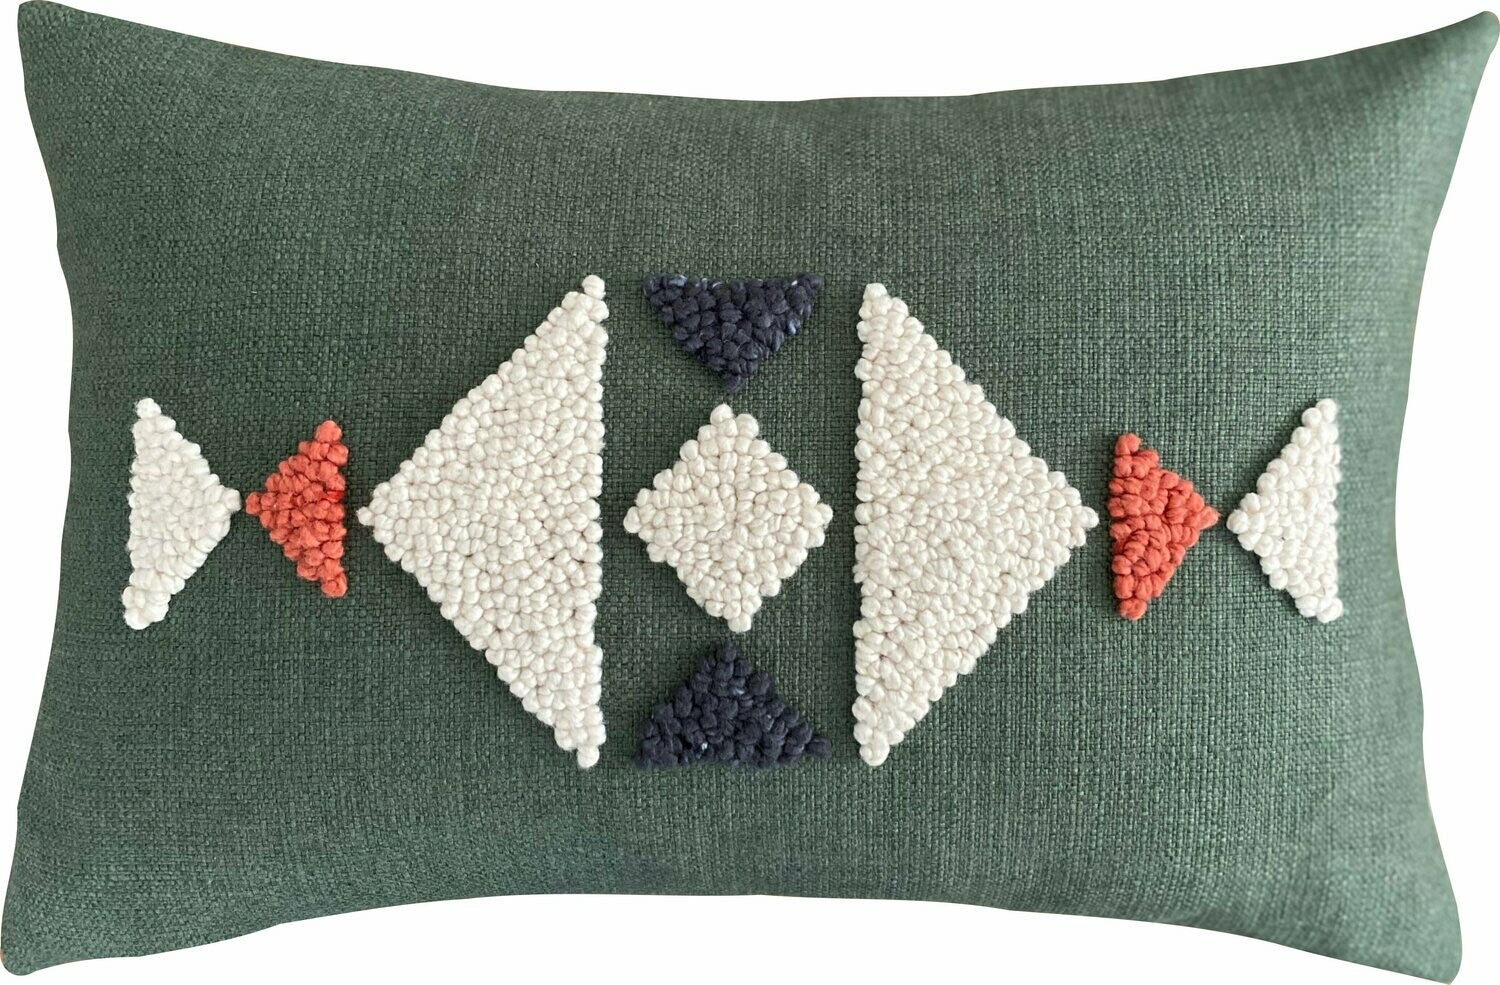 Punch Needle Cushion - AfriScandi Pattern 2 (60cmx40cm)